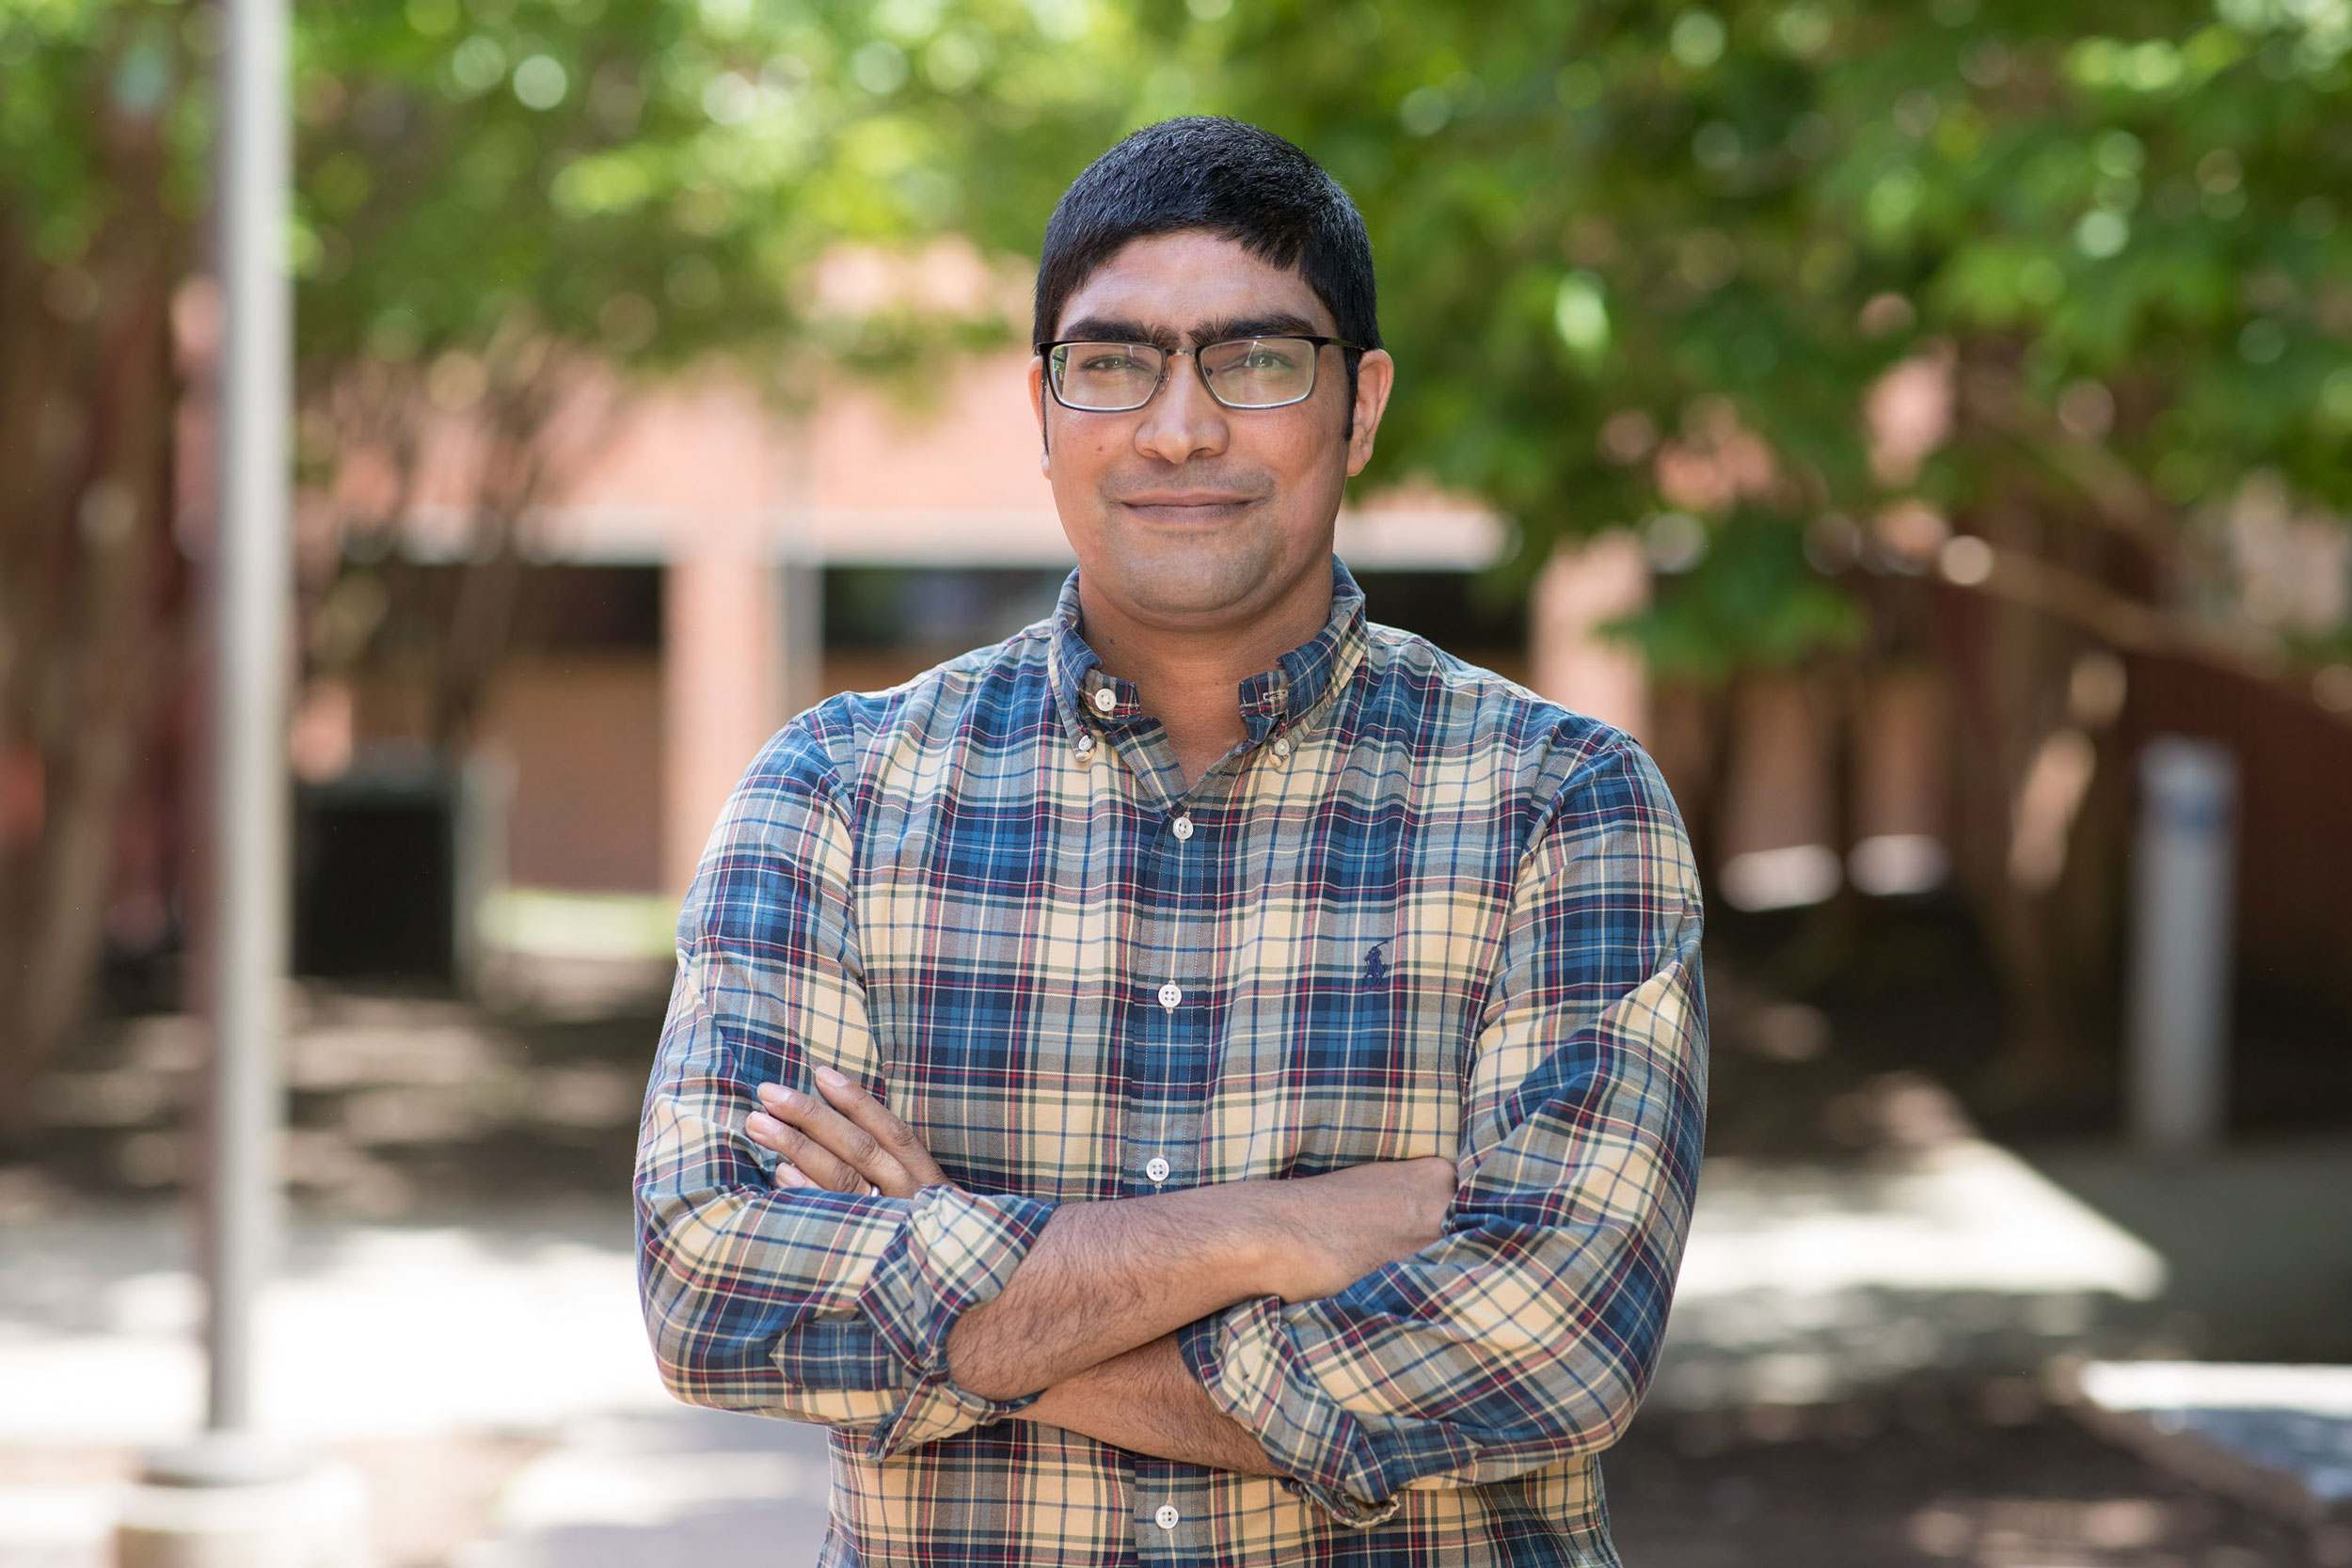 Research scientist Benjamin Lobo built a model that can predict treatment outcomes based on data from past experiences.